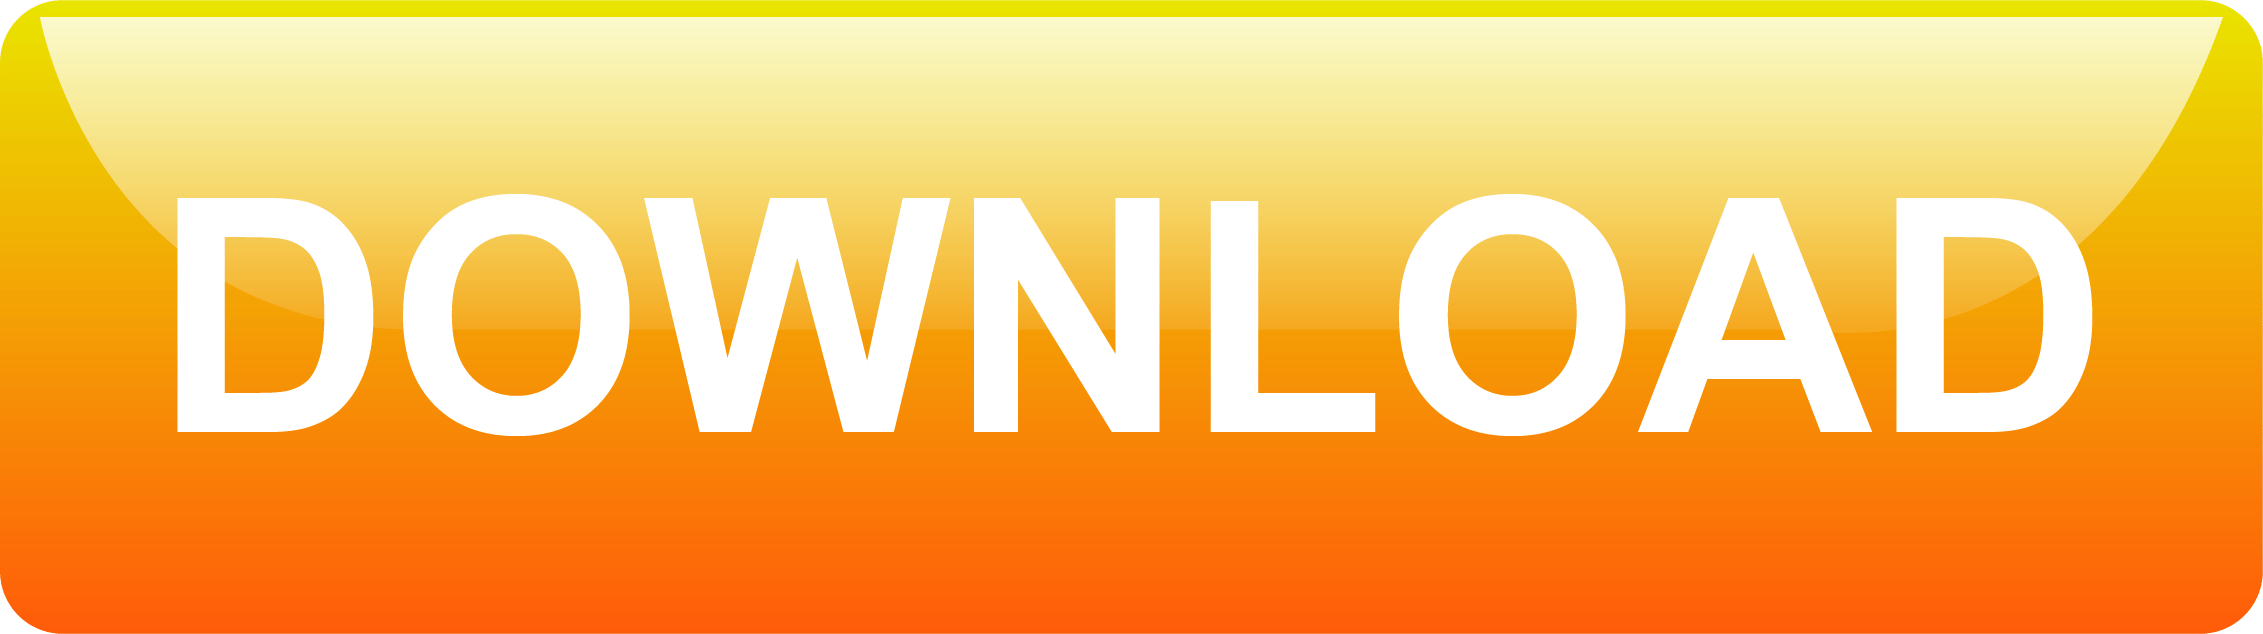 Download button png Orange